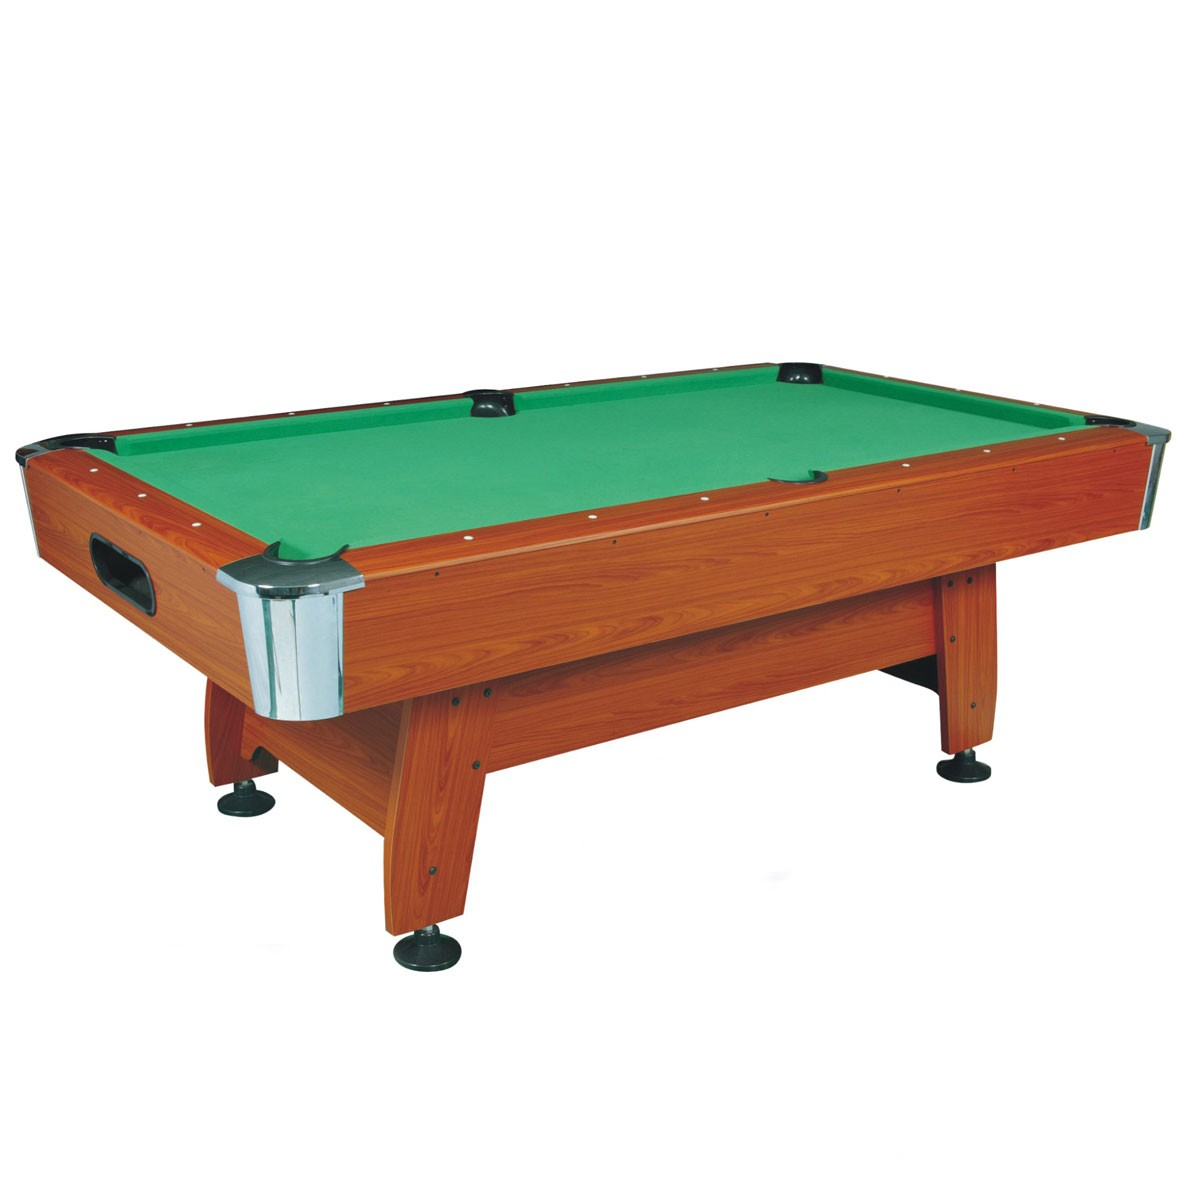 8 Foot Pool Table with Ball Return System and Accessories (ZLB-P01)